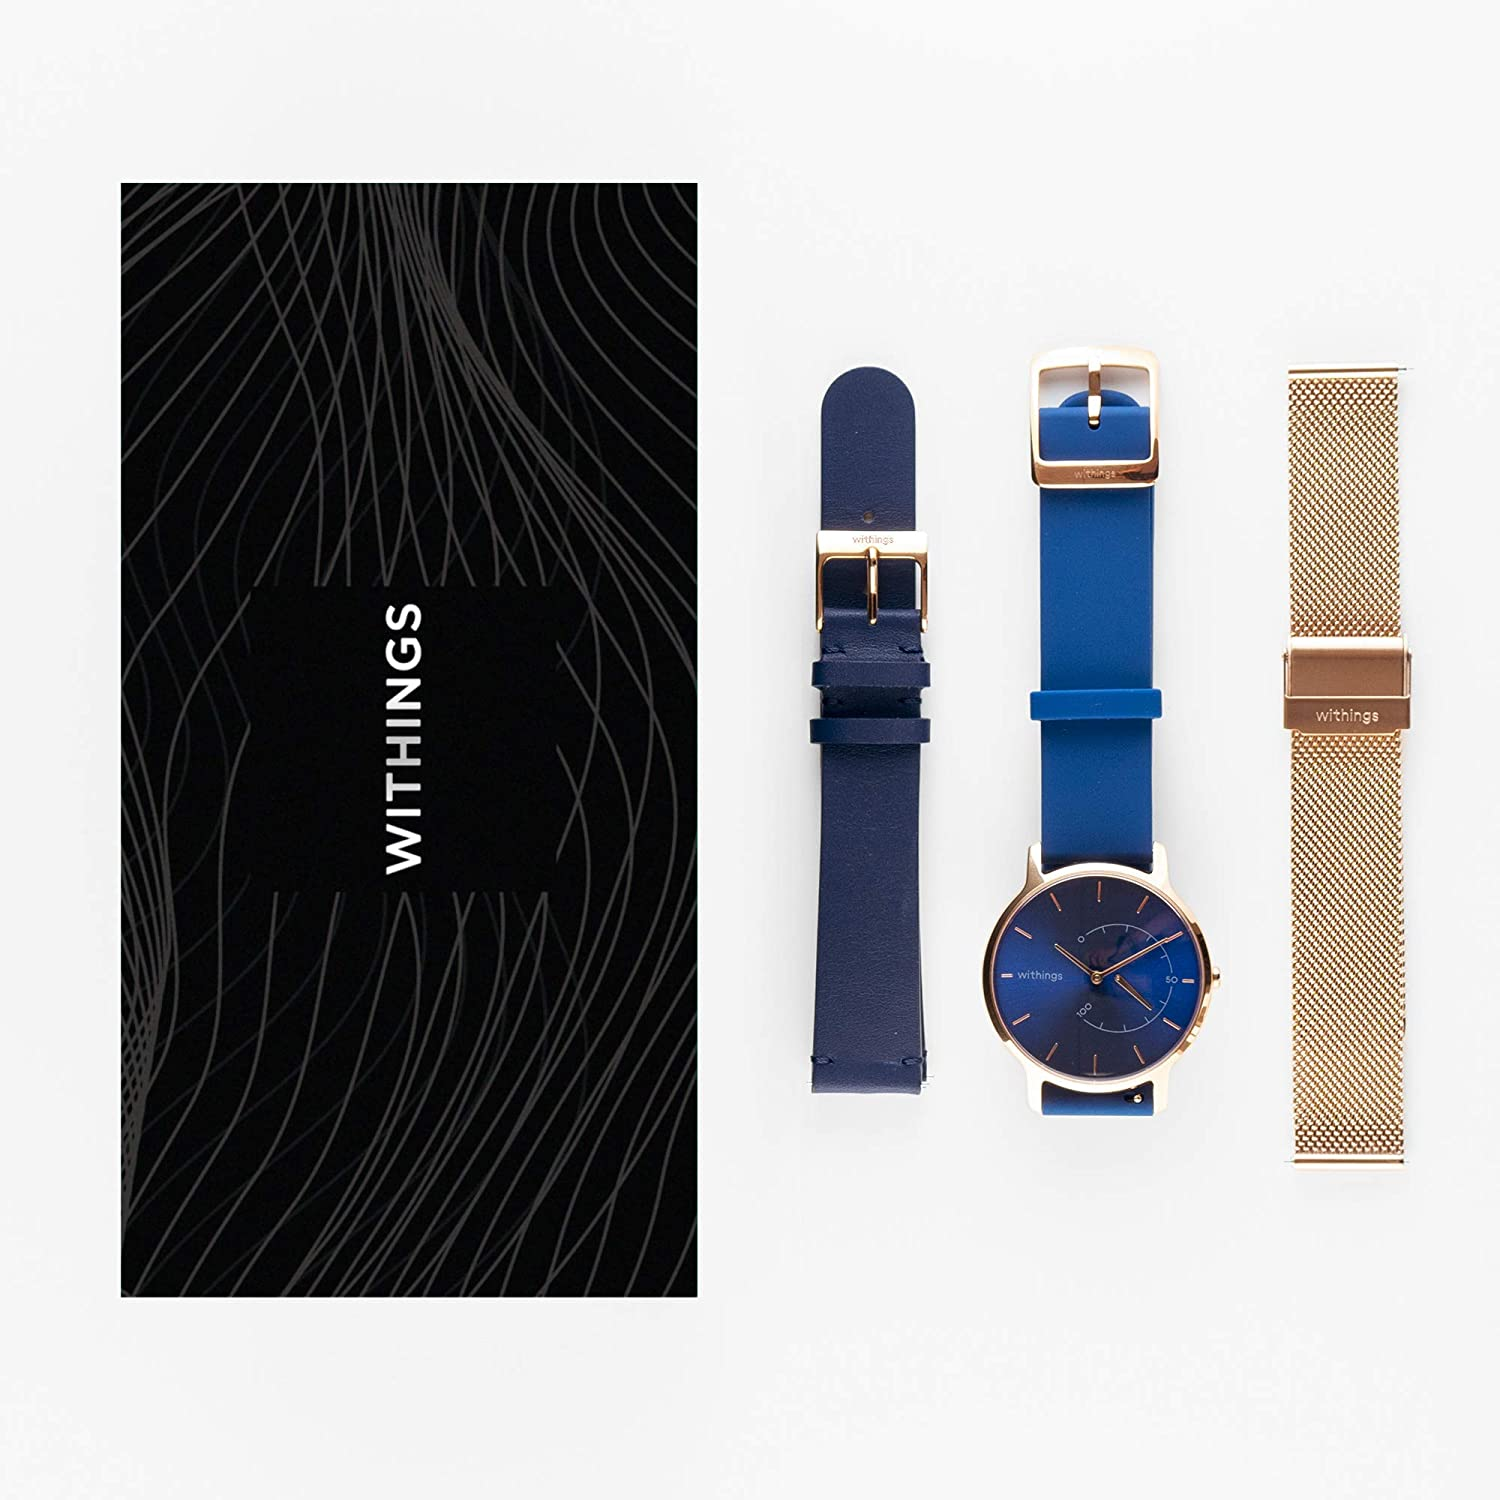 Amazon.com : Withings Box - One Hybrid Smartwatch with 3 ...